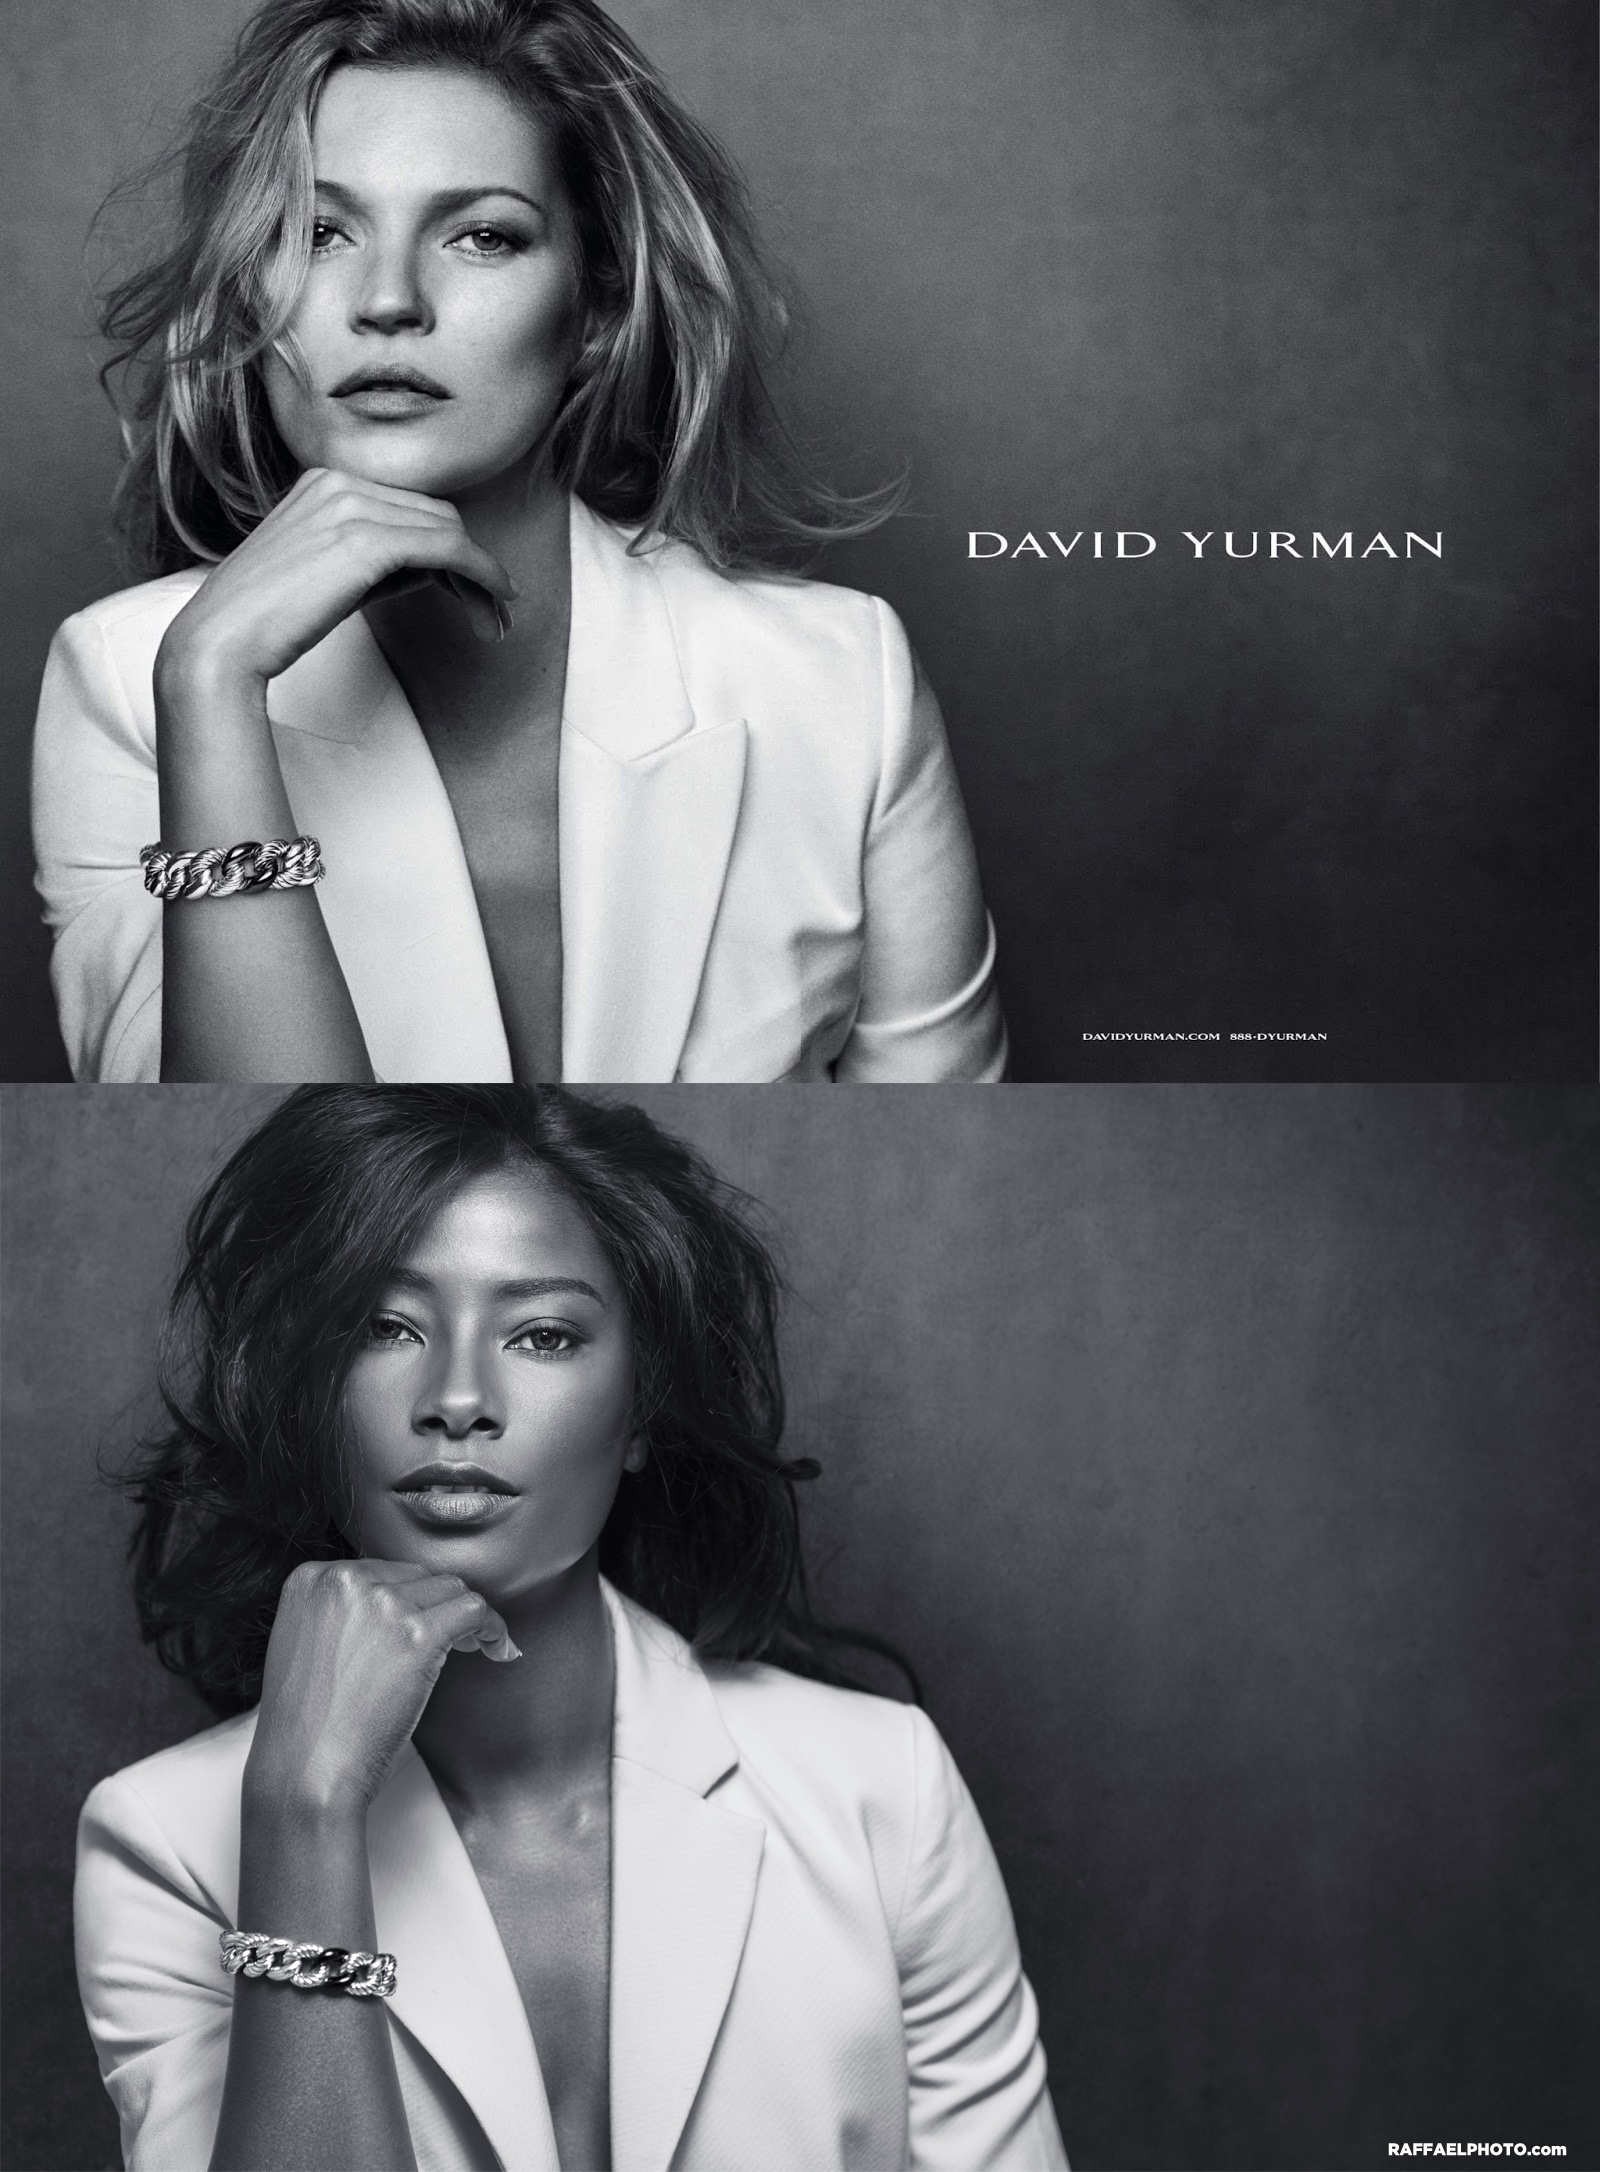 8_deddeh_howard_raffael_dickreuter_david_yurman_kate_moss_campaign_secretofdd